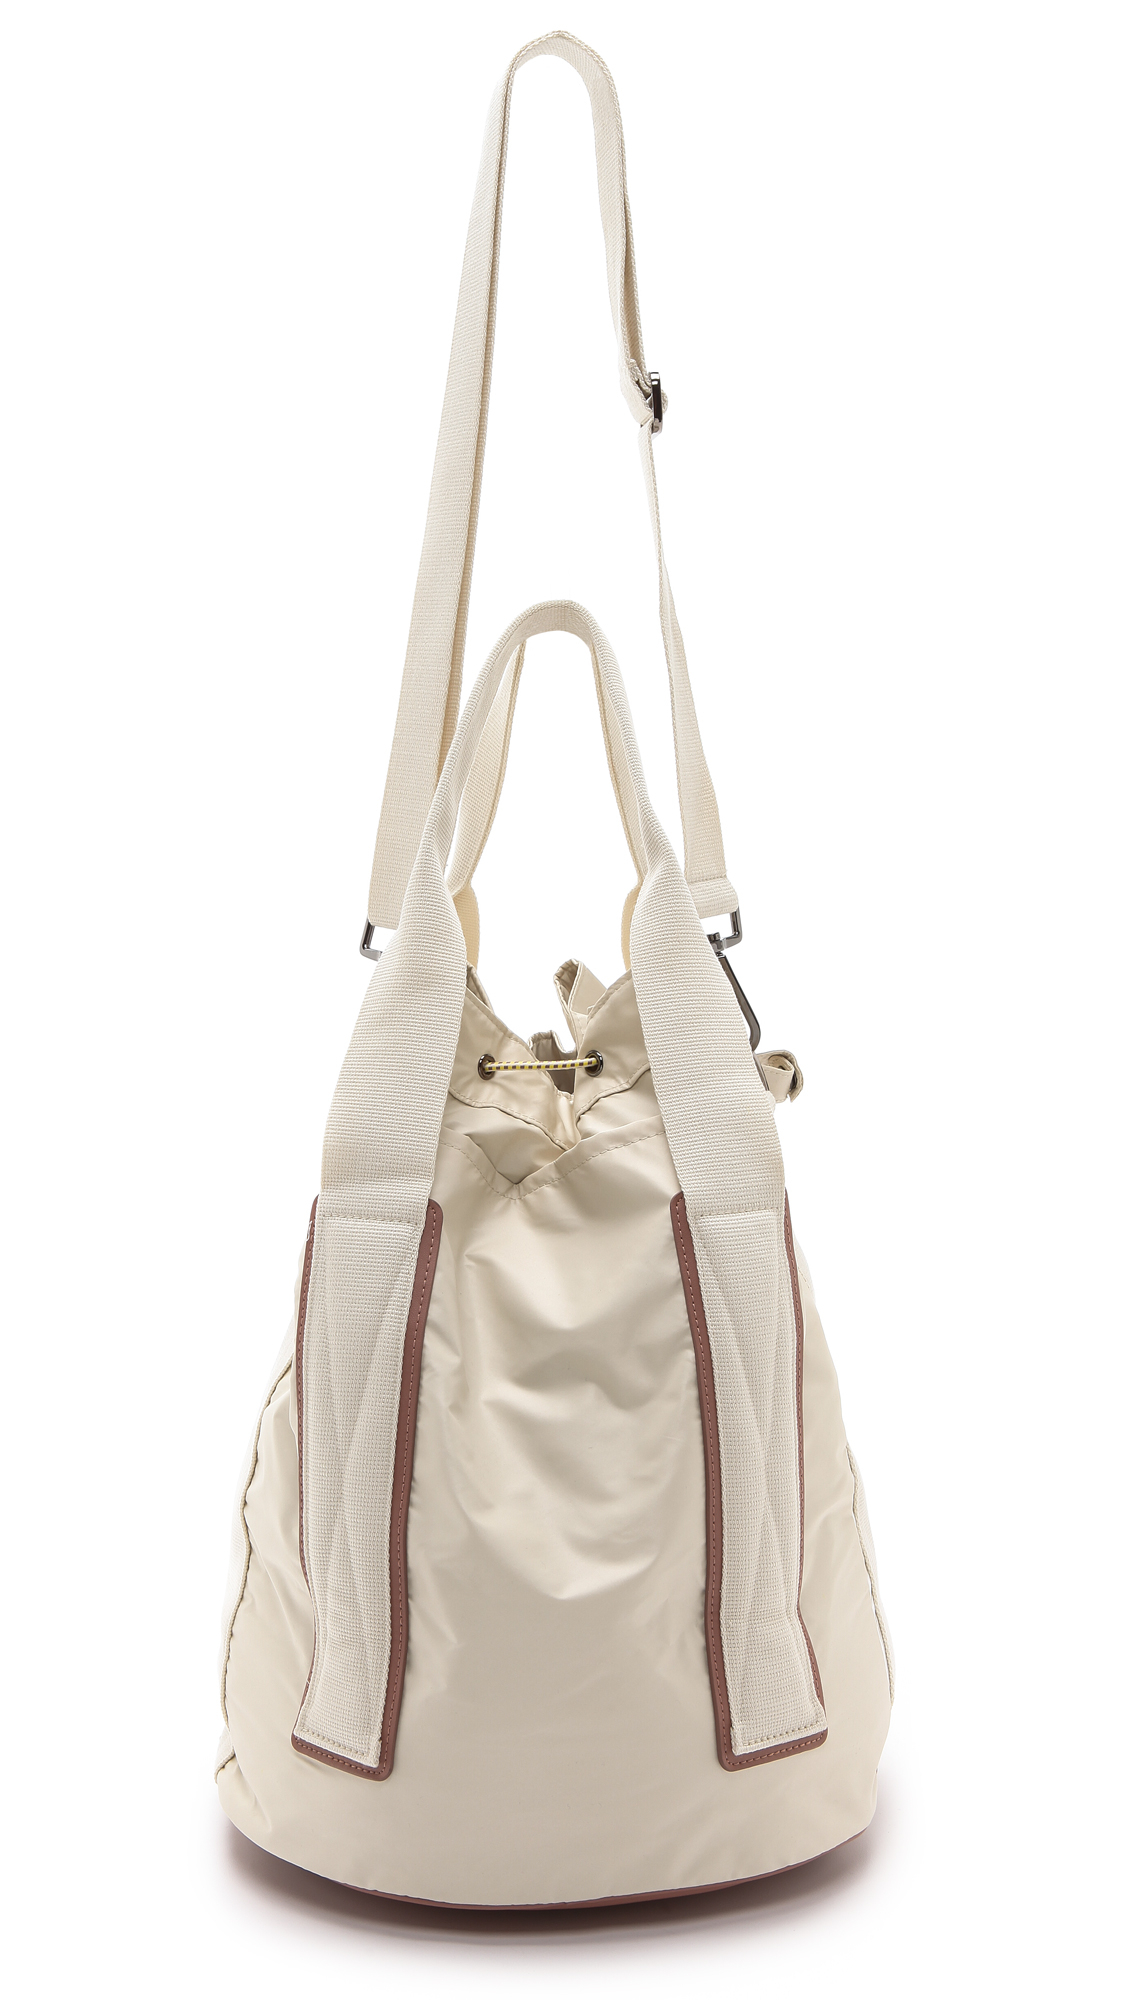 725947a56d Adidas Stella Mccartney Tennis Bag White